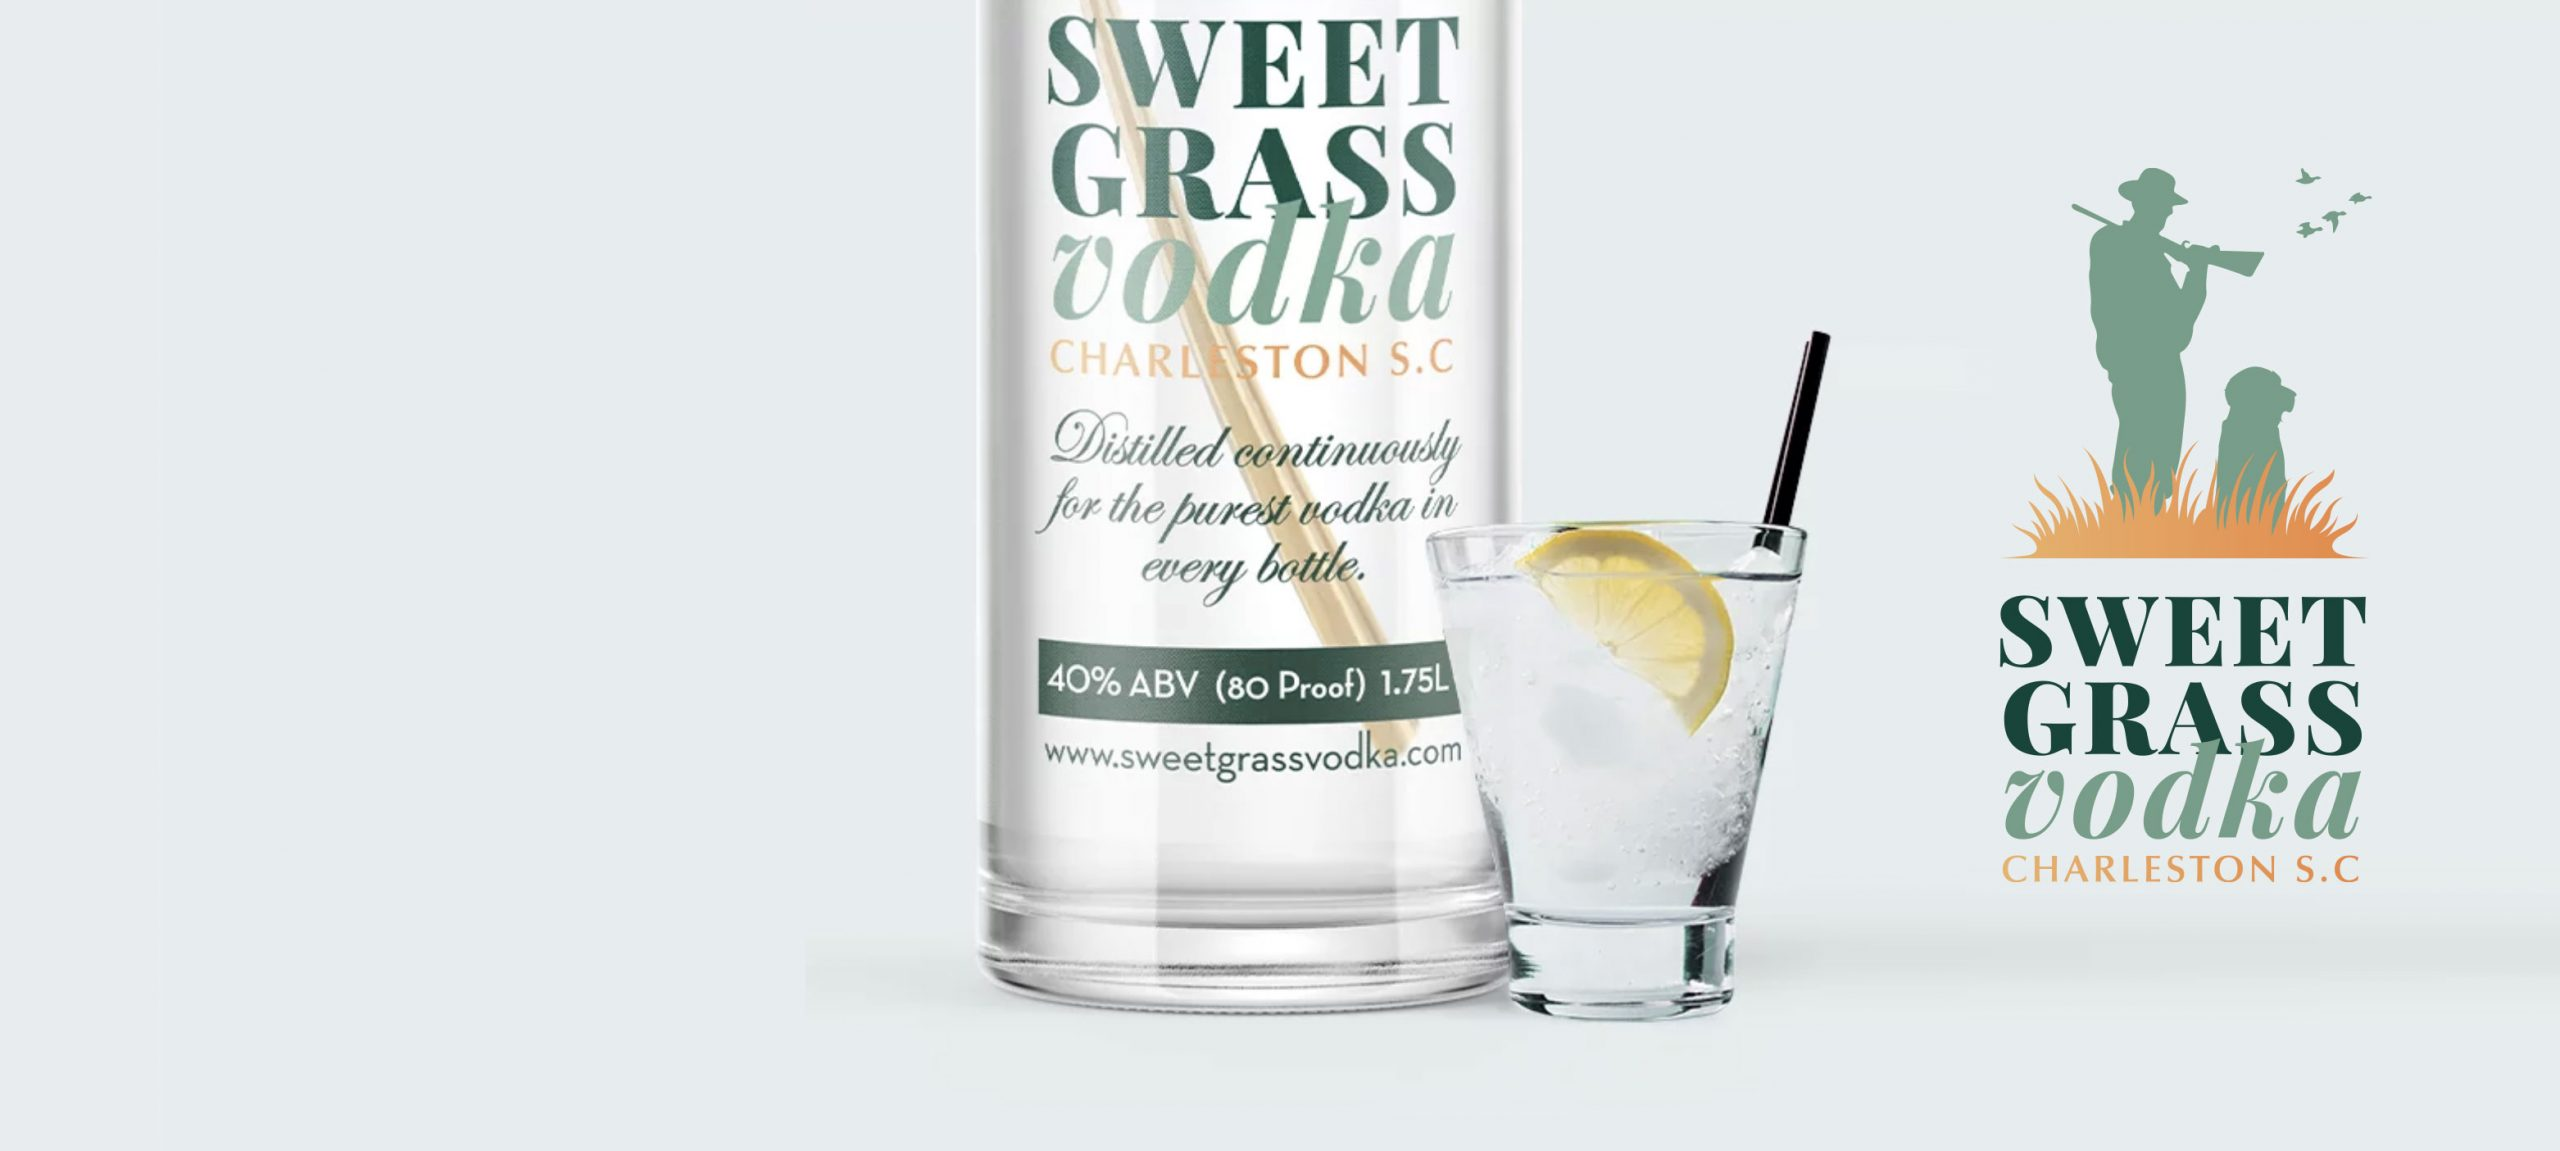 Sweet Grass Vodka Announces Partnership with Intercontinental Beverage Capital